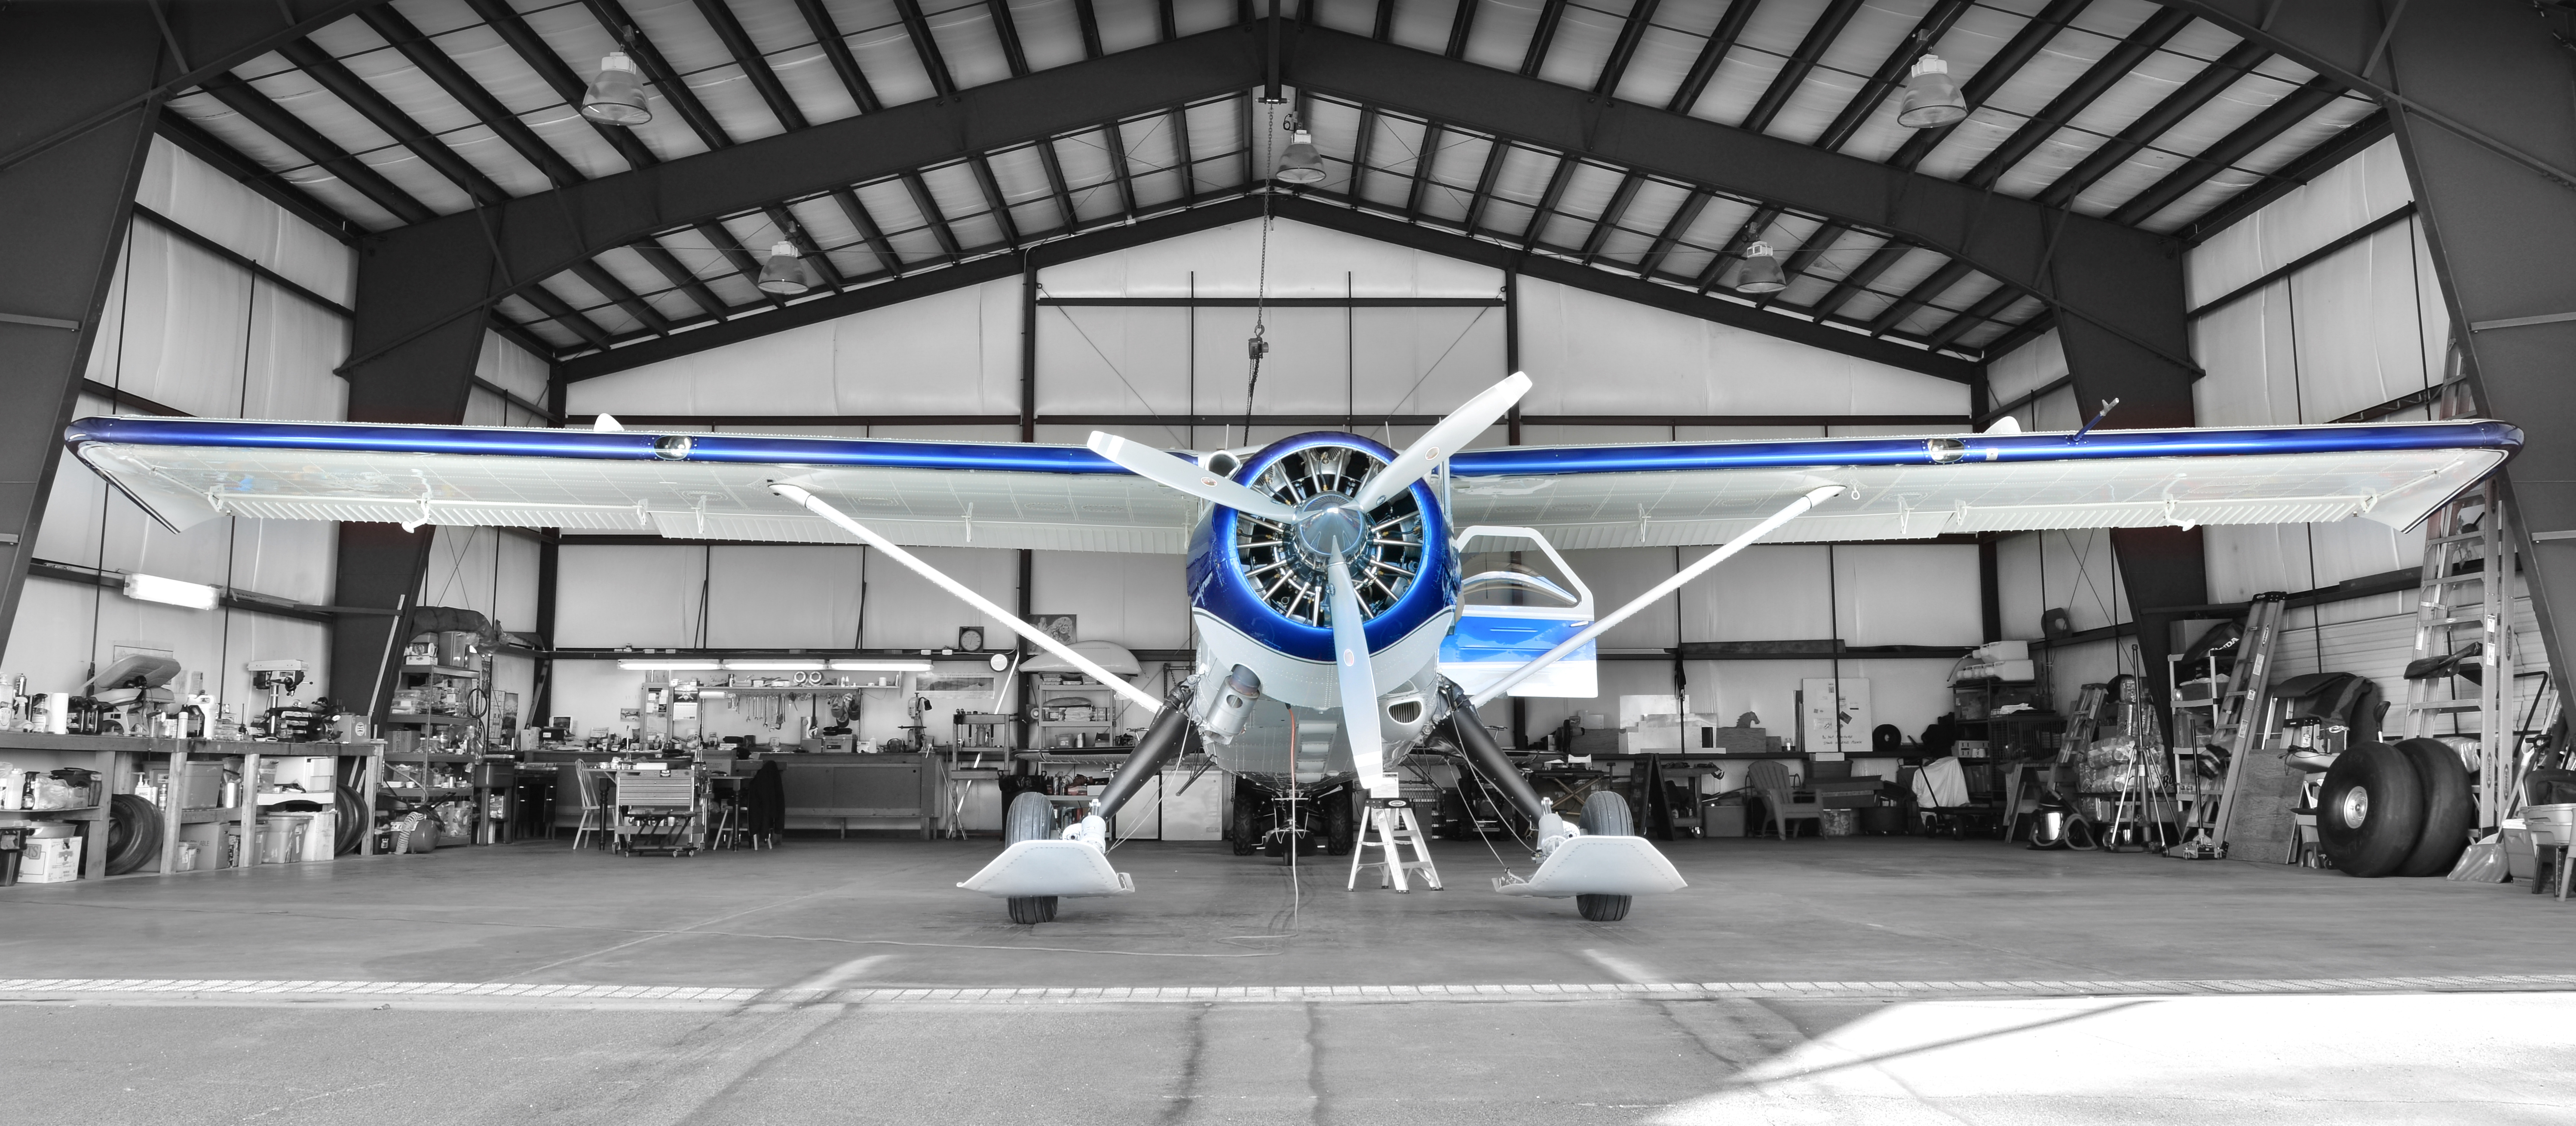 Background image displaying a plane in a hangar.